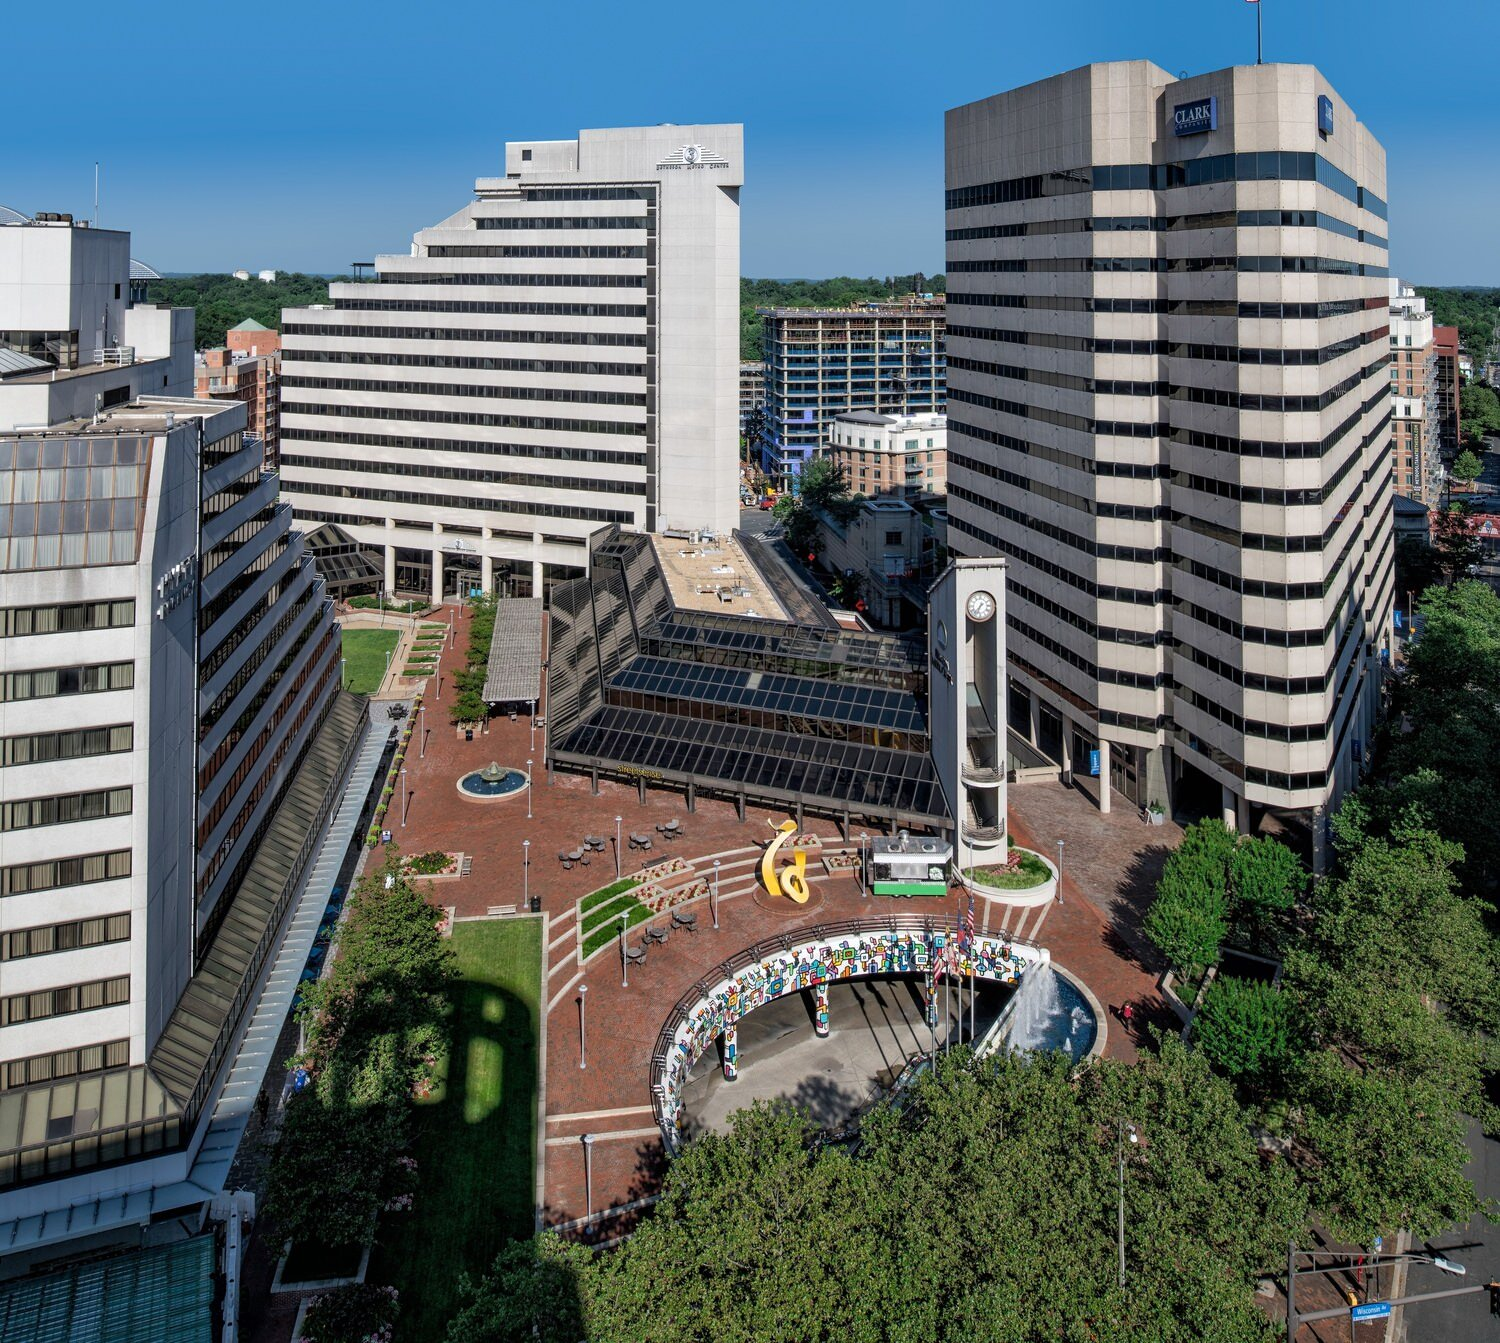 A walking area that is at the base of three different office buildings that are located in a downtown area in a city.